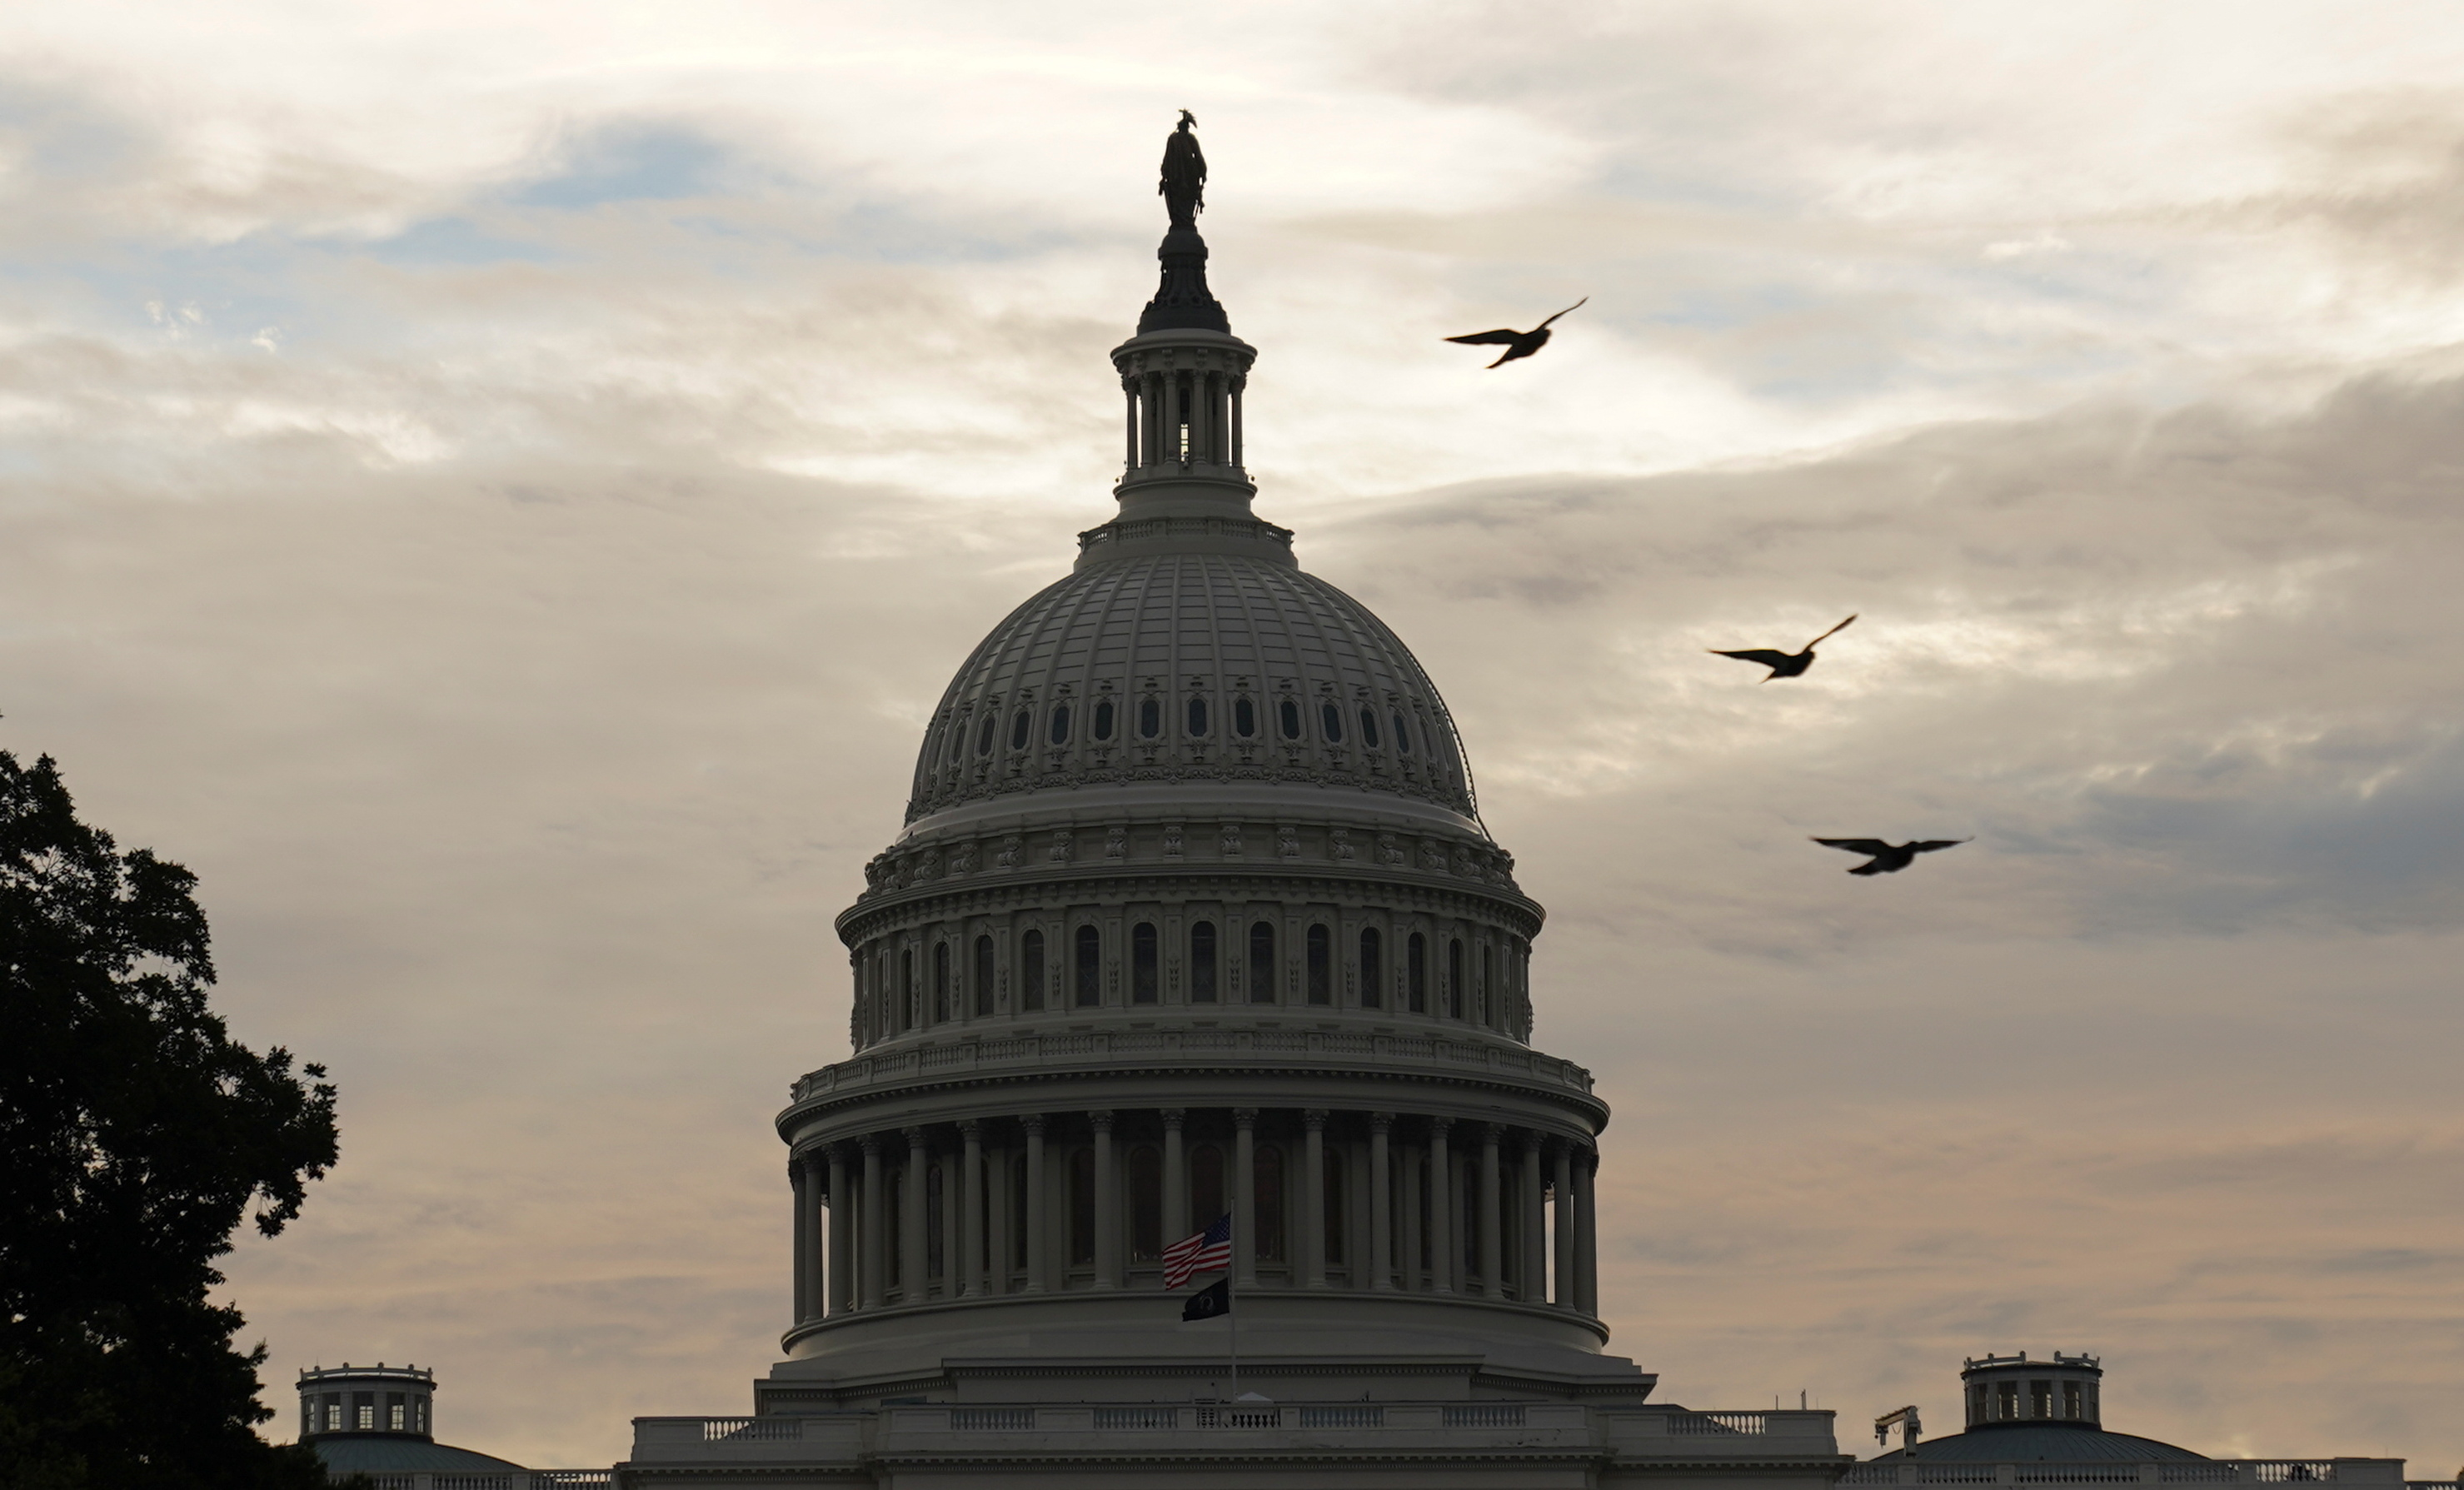 Birds fly near the U.S. Capitol days after Democratic leaders of the U.S. House of Representatives delayed a planned vote on a $1 trillion bipartisan infrastructure bill, in Washington, U.S., October 4, 2021. REUTERS/Kevin Lamarque